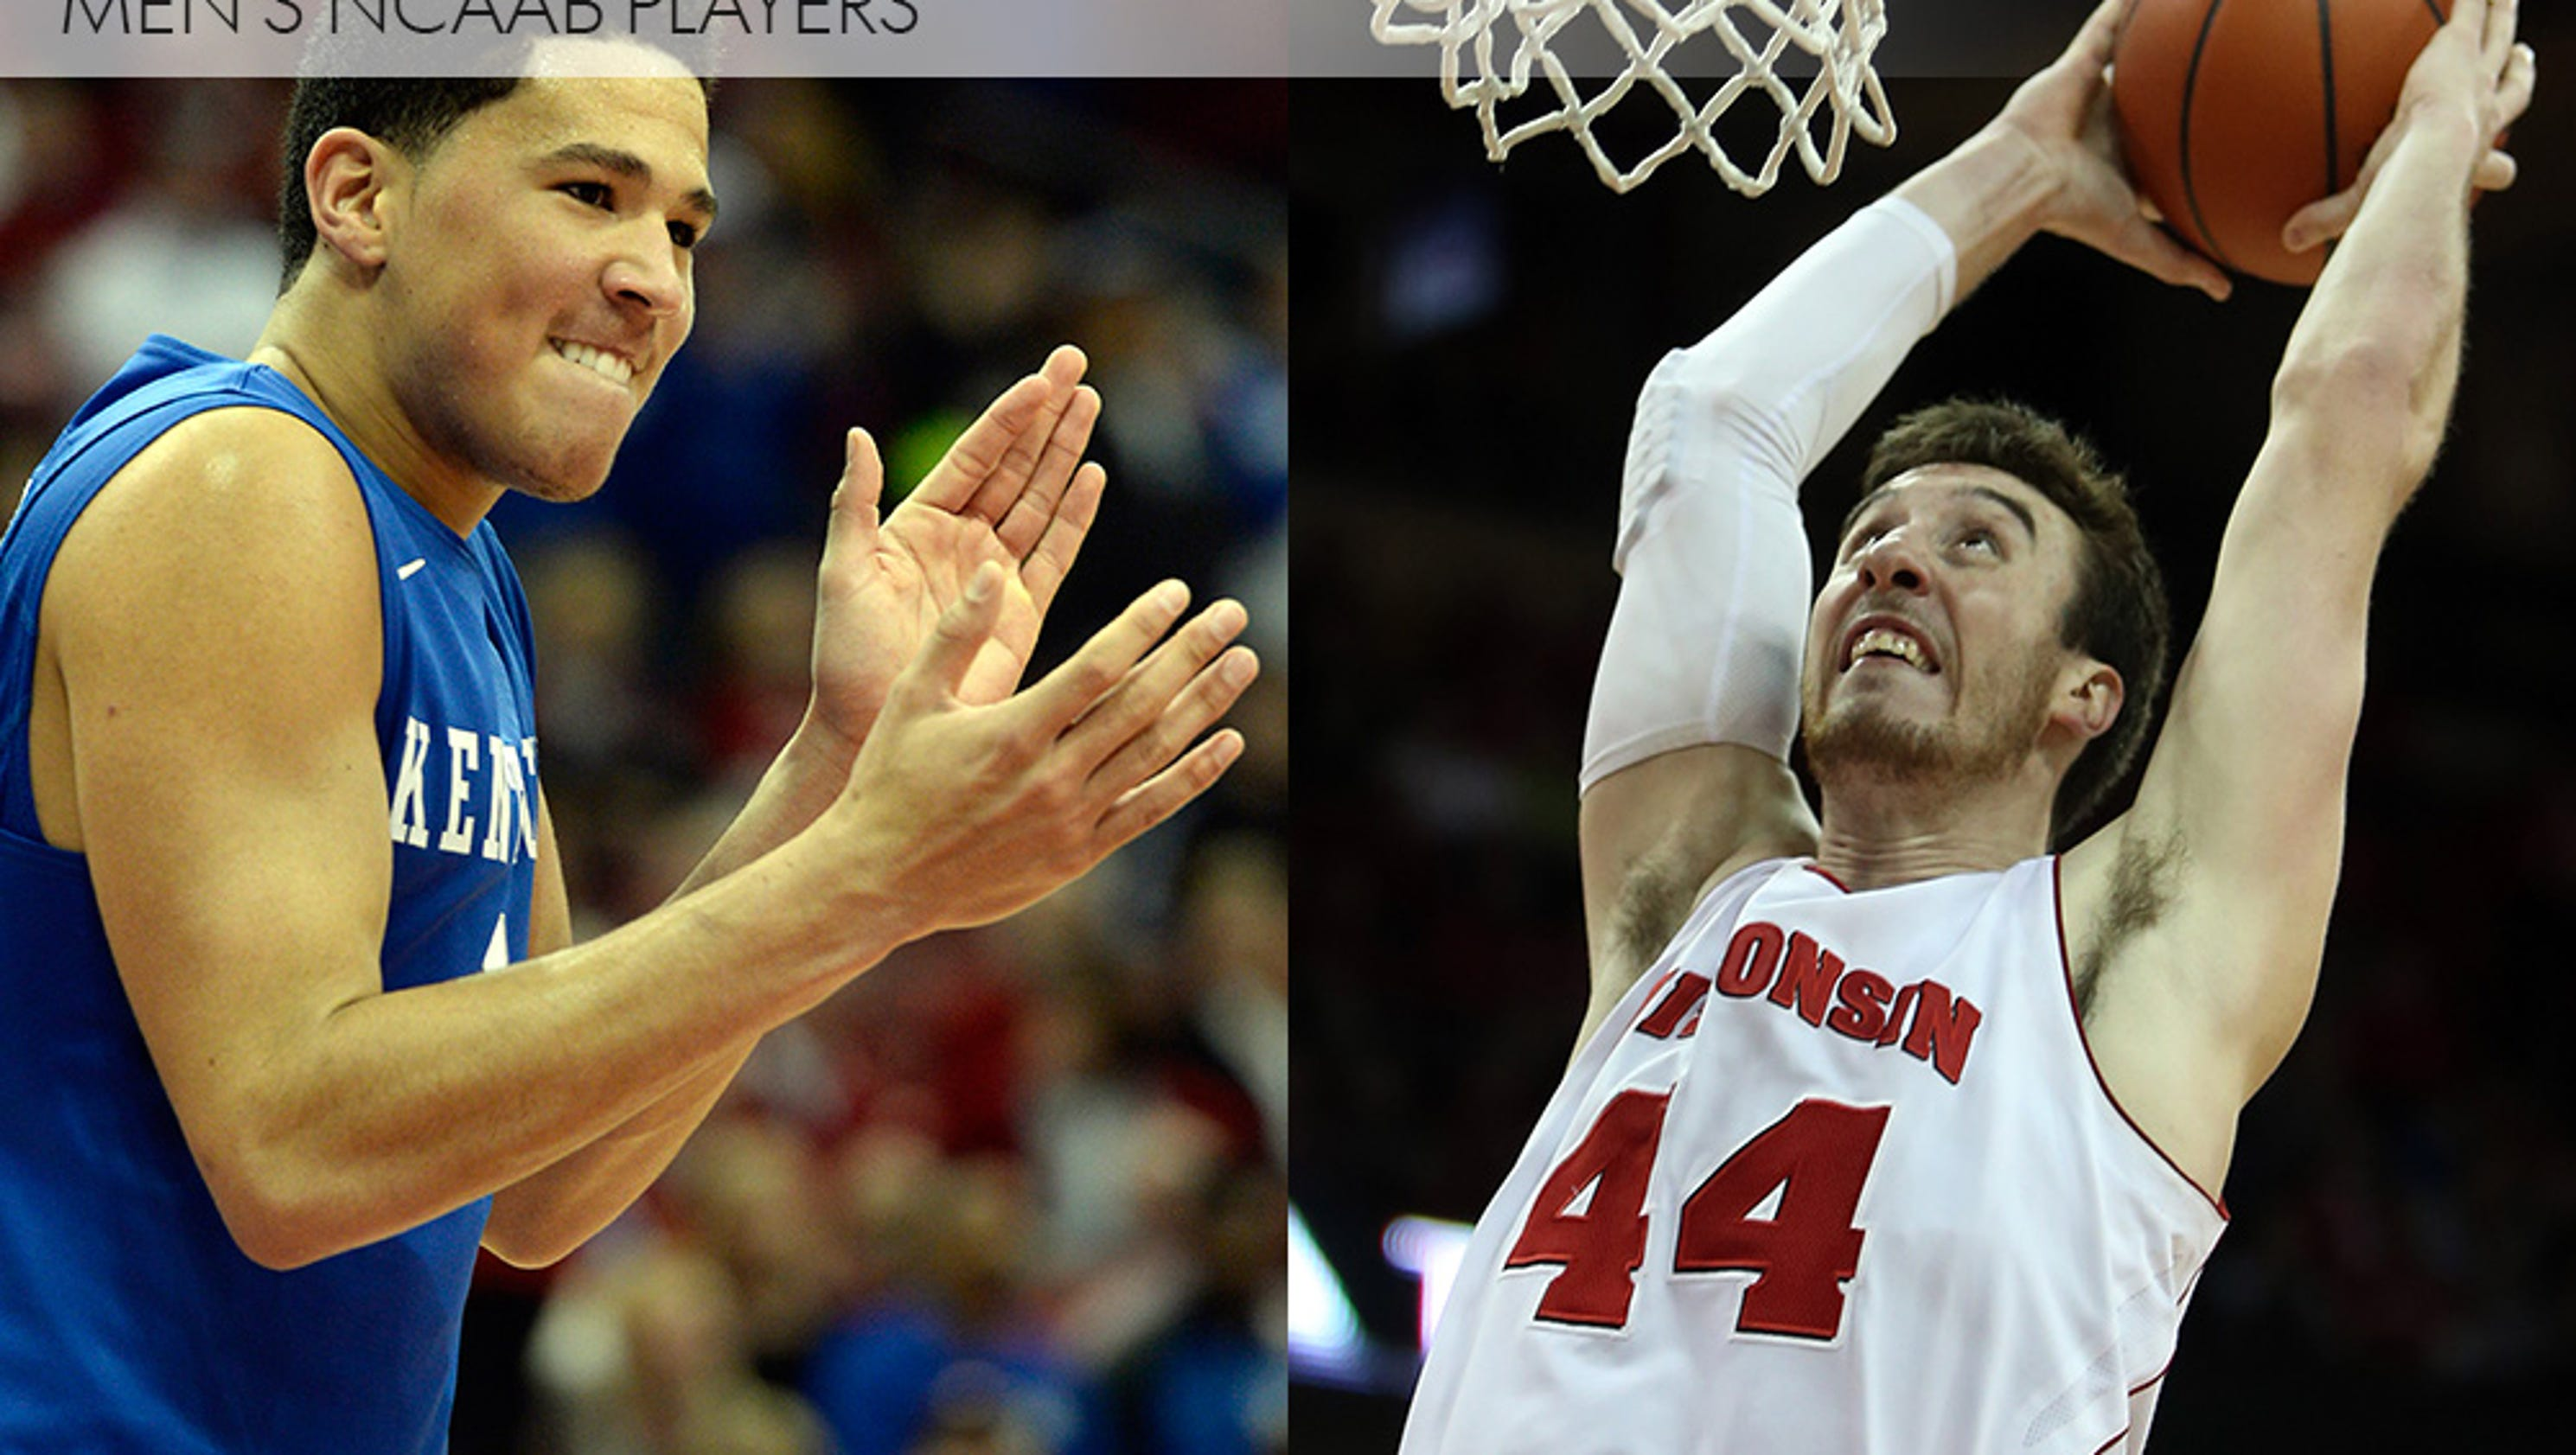 Ranking the weekly top 10 college basketball players